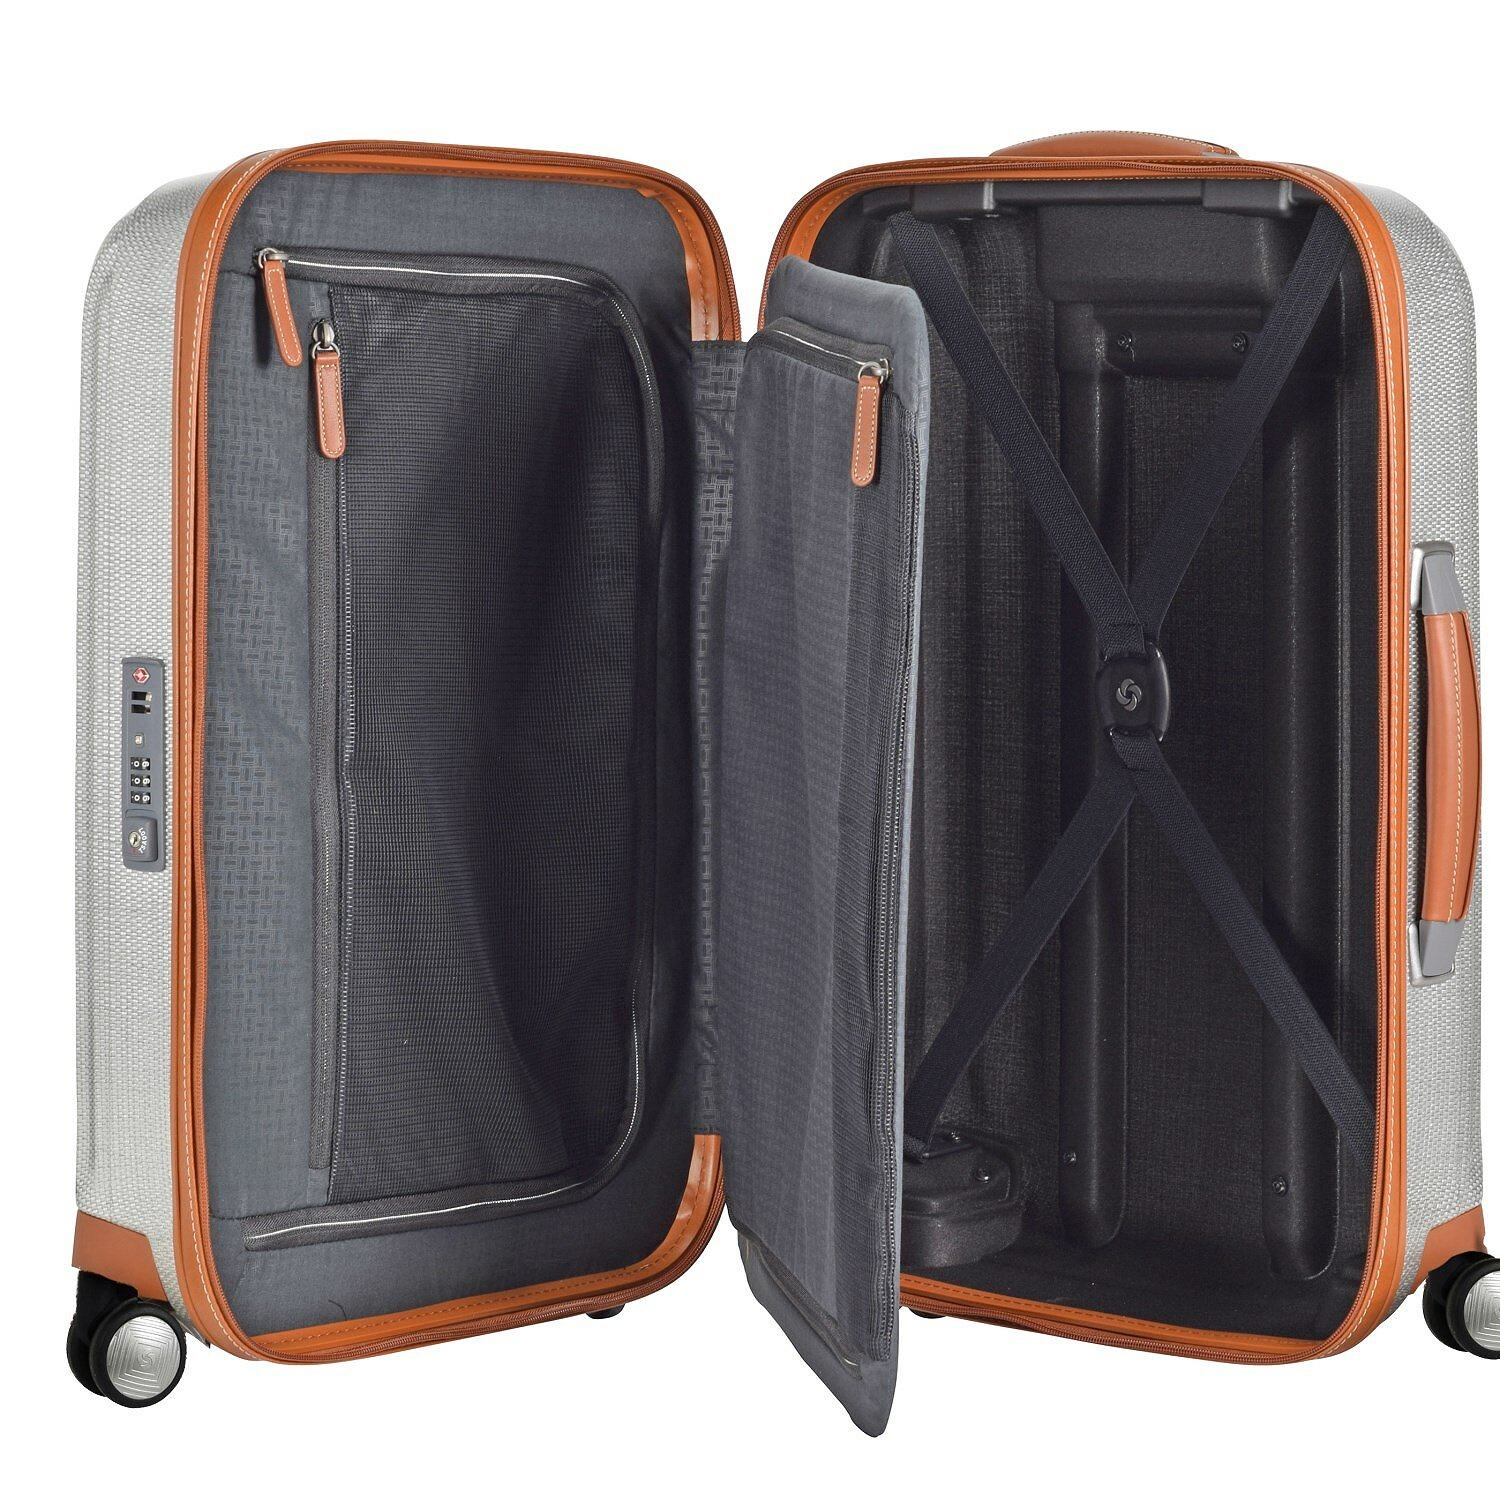 samsonite lite cube dlx spinner 4 rollen kabinentrolley 55 cm aluminiumfarben koffer. Black Bedroom Furniture Sets. Home Design Ideas